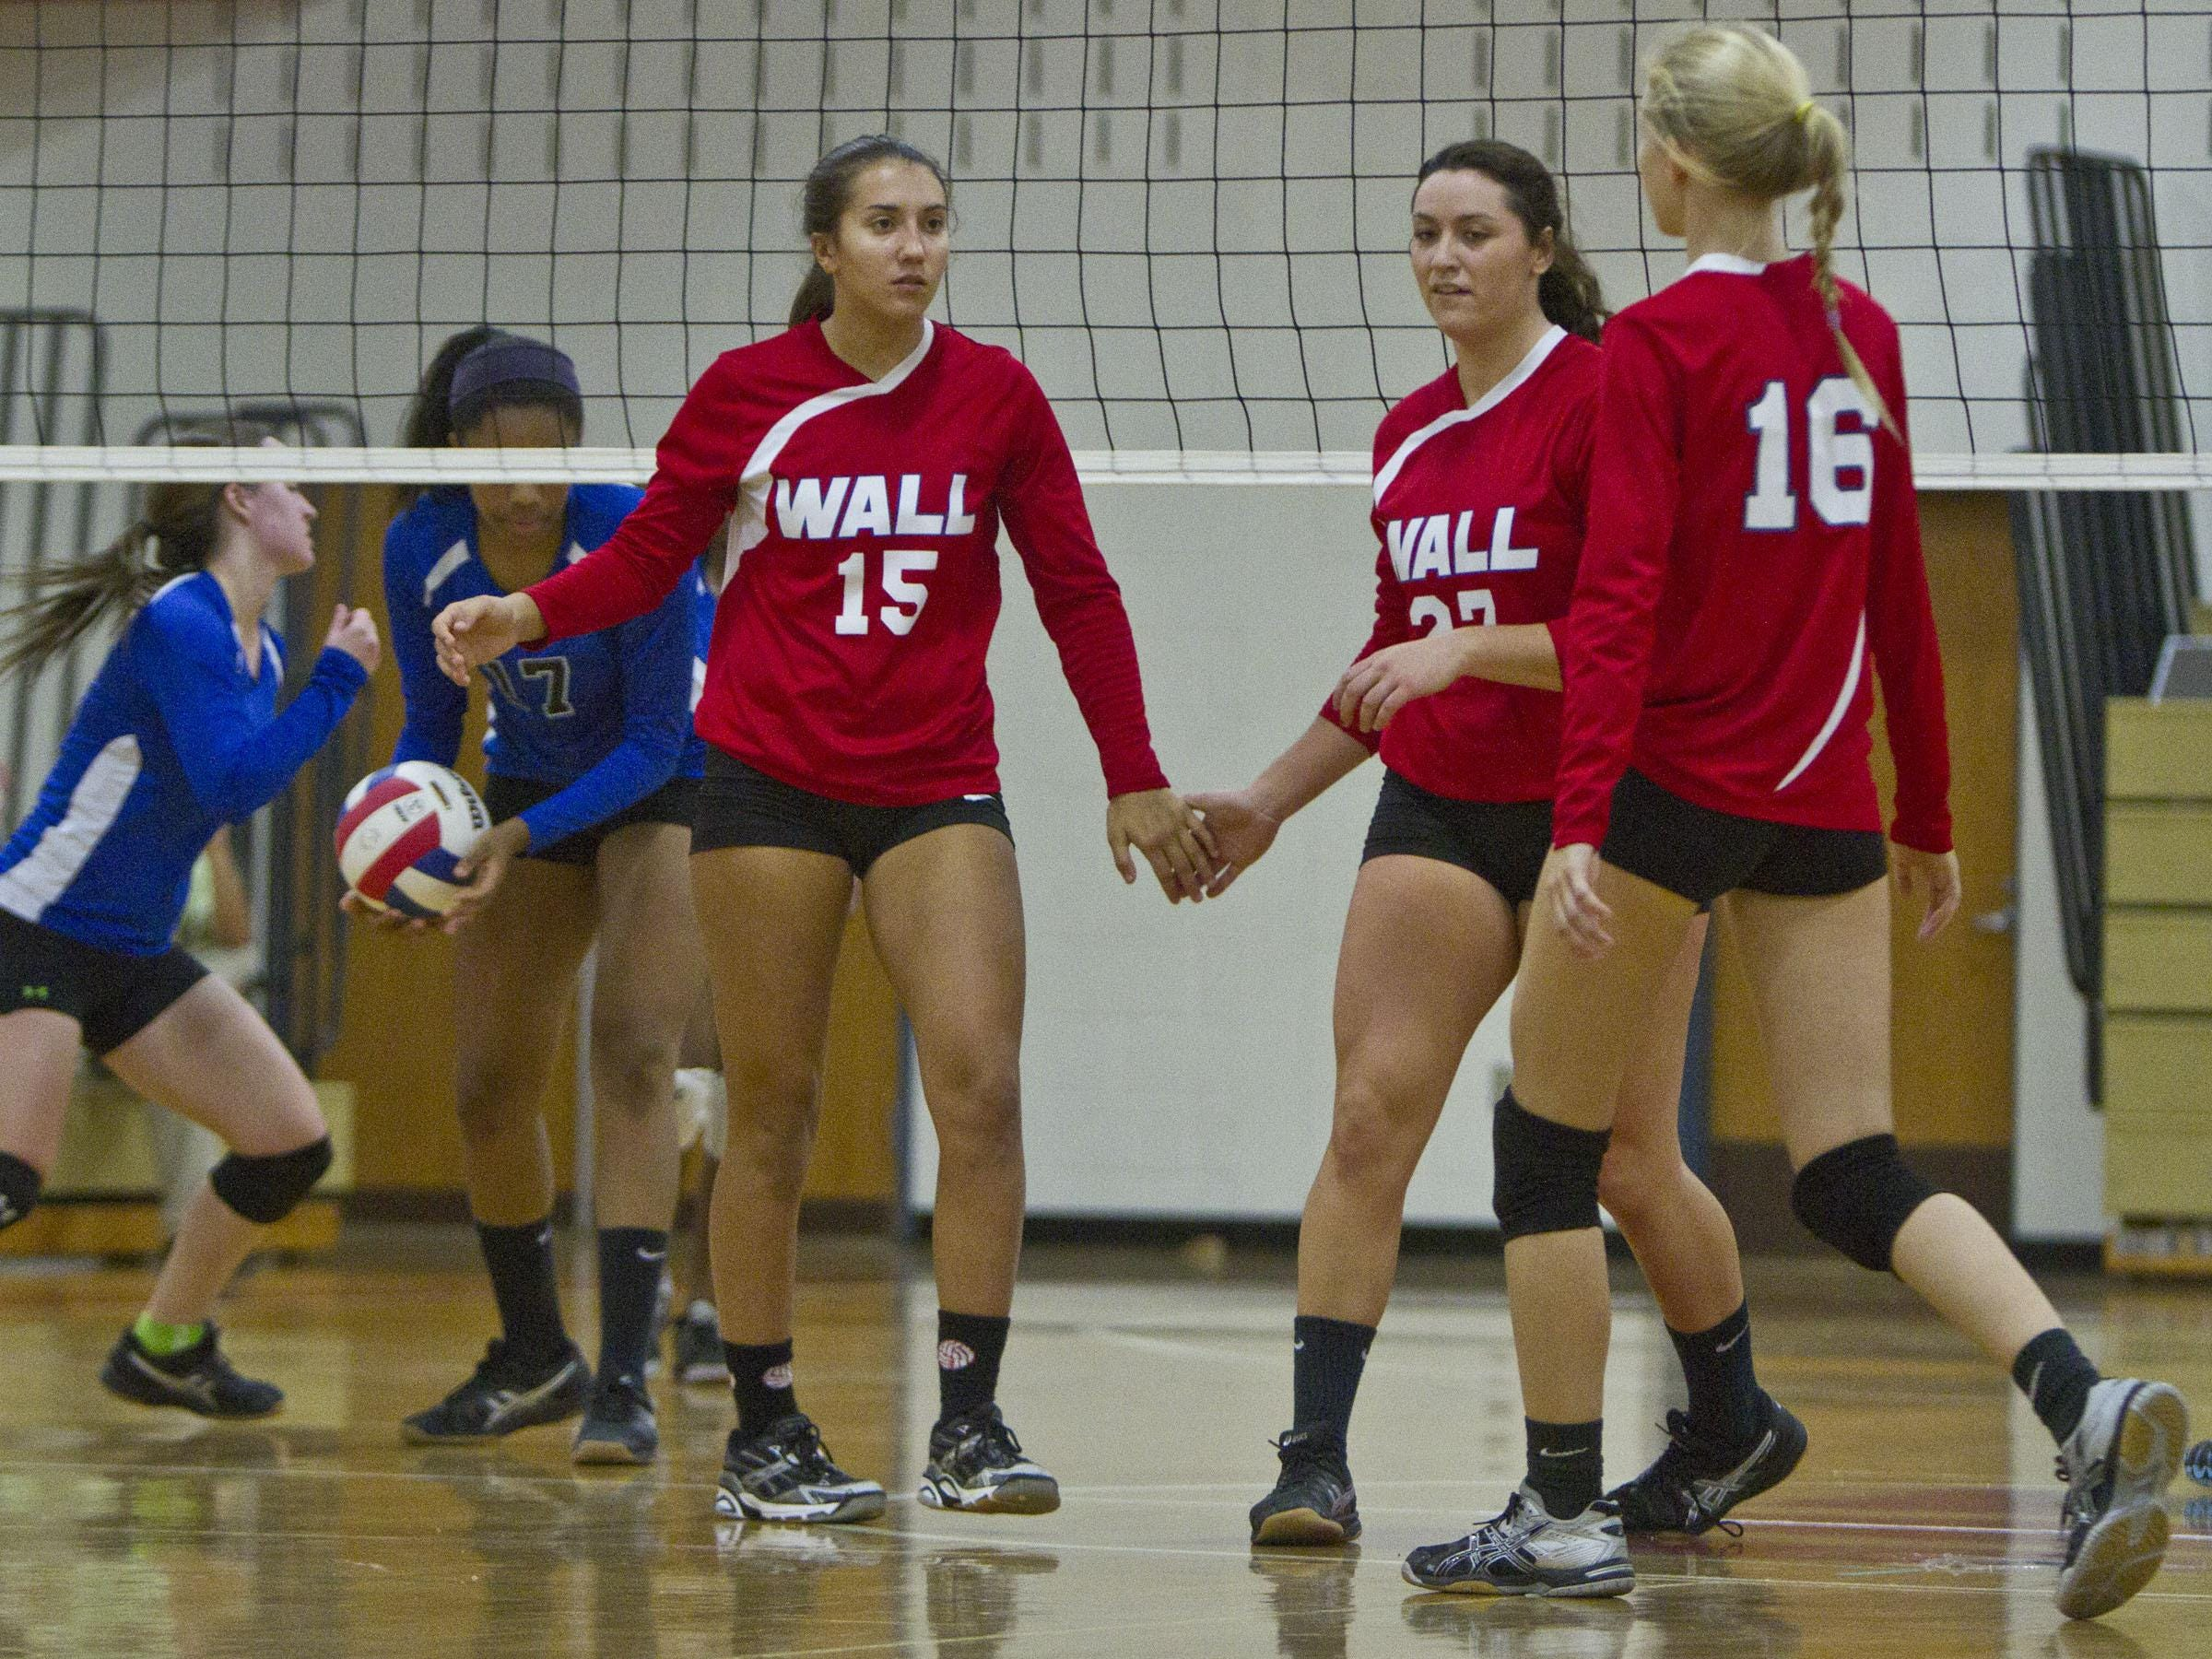 Wall's Jess Stansfield (15), Colleen Brennan (27) and Kaitlyn Pepe celebrate a point. NJSIAA volleyball match between Wall and West Windsor Plainsboro North. Wall Township, NJ Wednesday, November 4, 2015 @dhoodhood